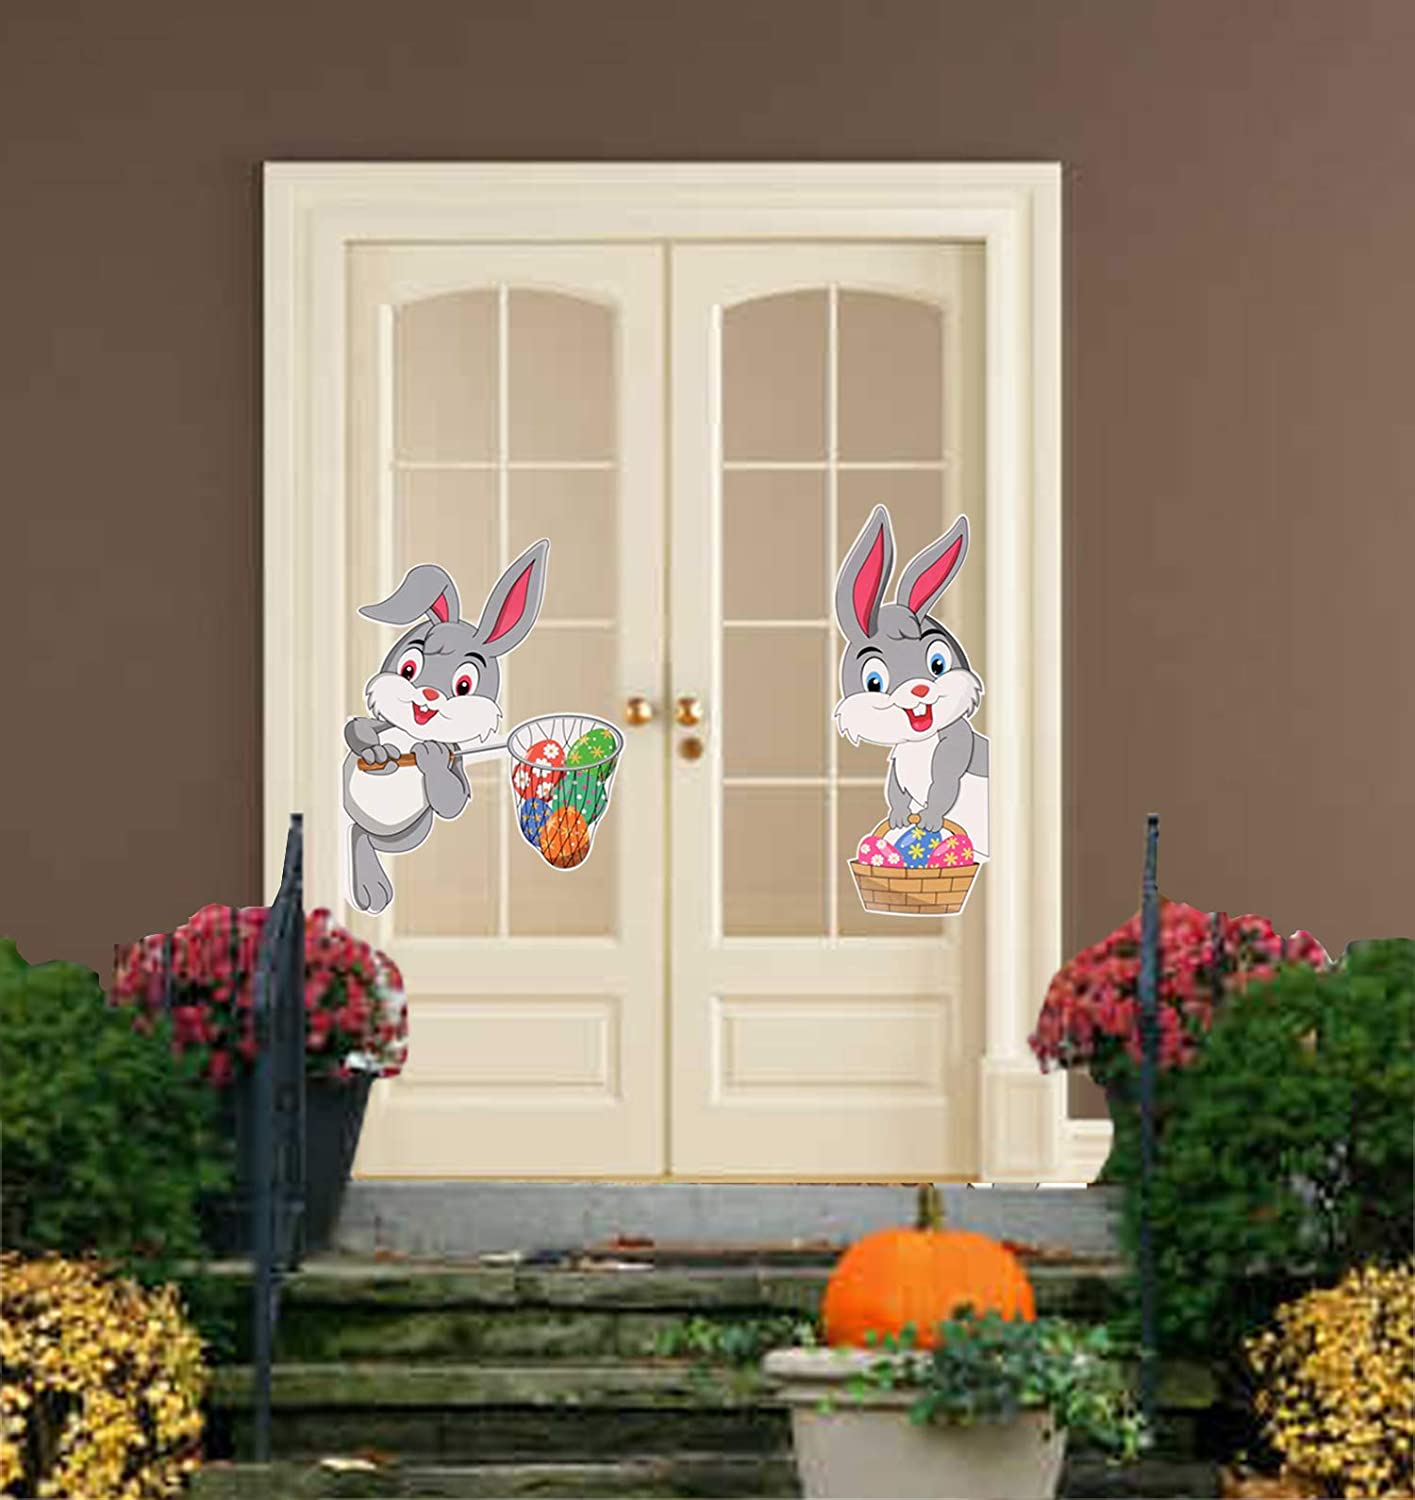 CCINEE 10pcs Easter Bunny Stickers Self Adhesive Cling Decals for Window Wall Floor Home Decoration